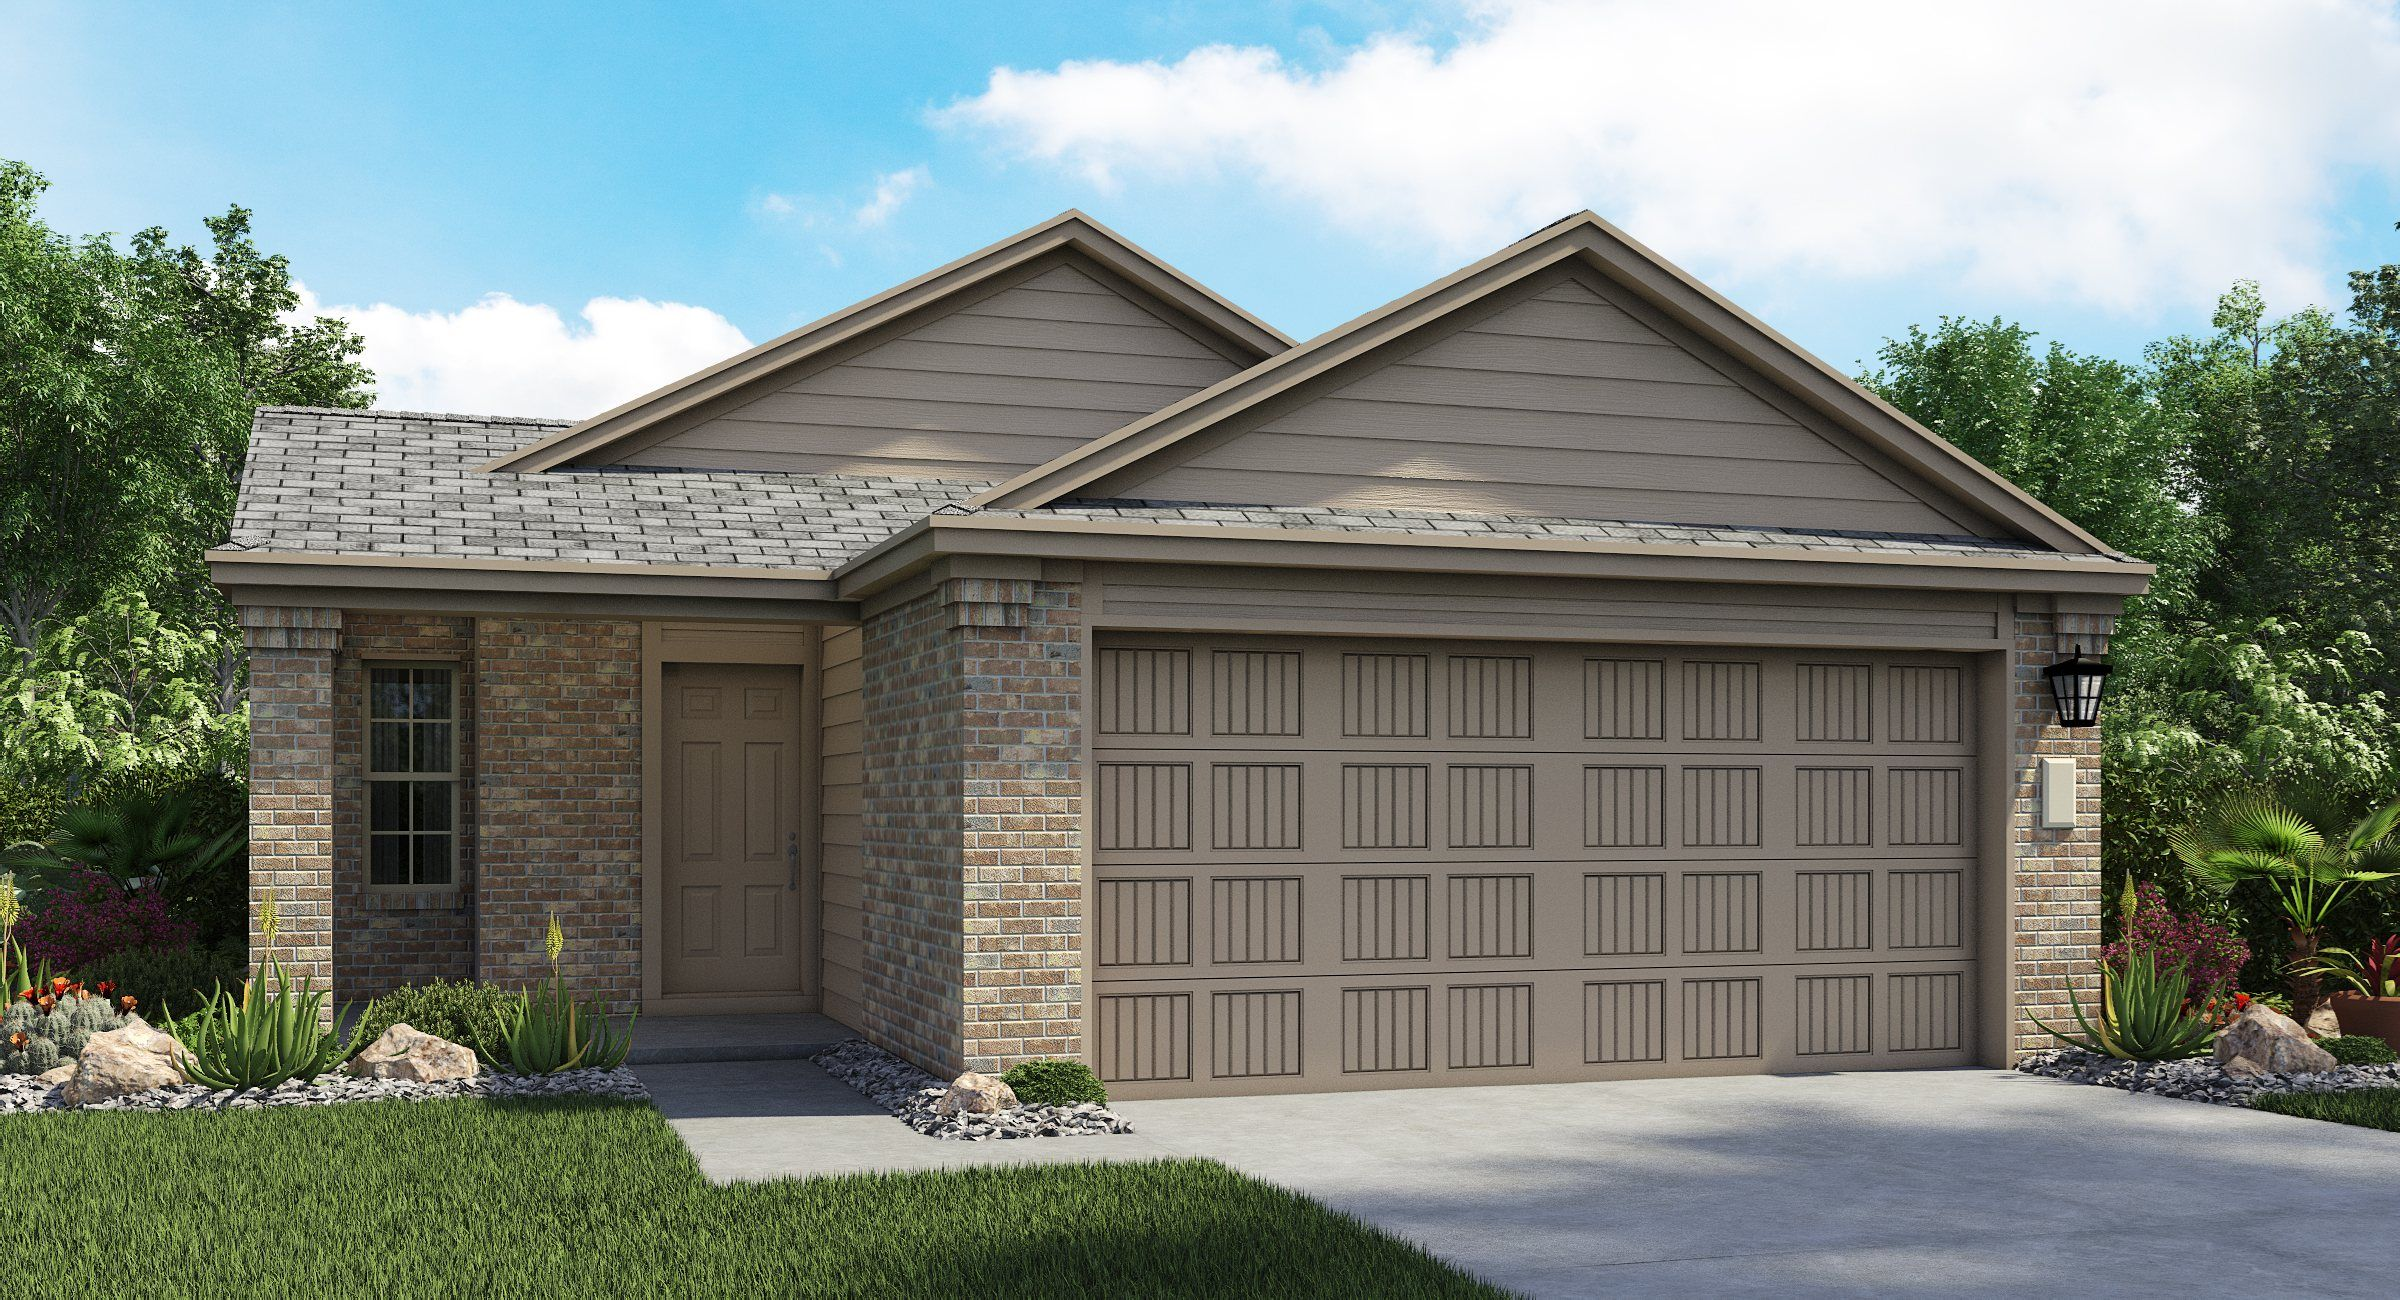 Fernbrook-Design-at-Sun Chase 40s-in-Del Valle